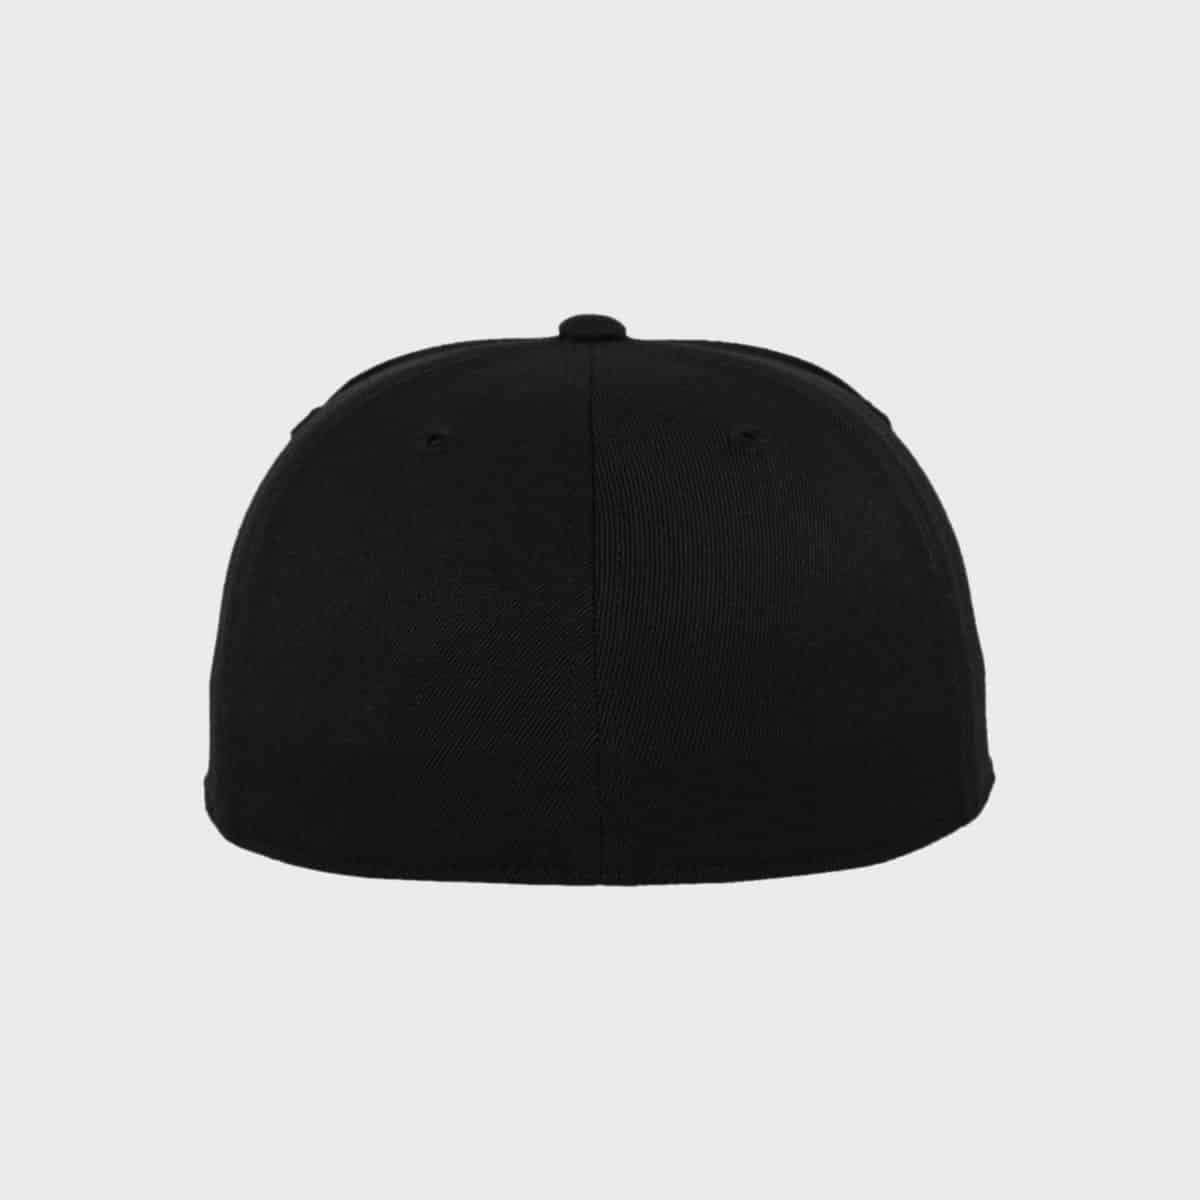 Flexfit FlexfitCaps FFE 6210 Black Back